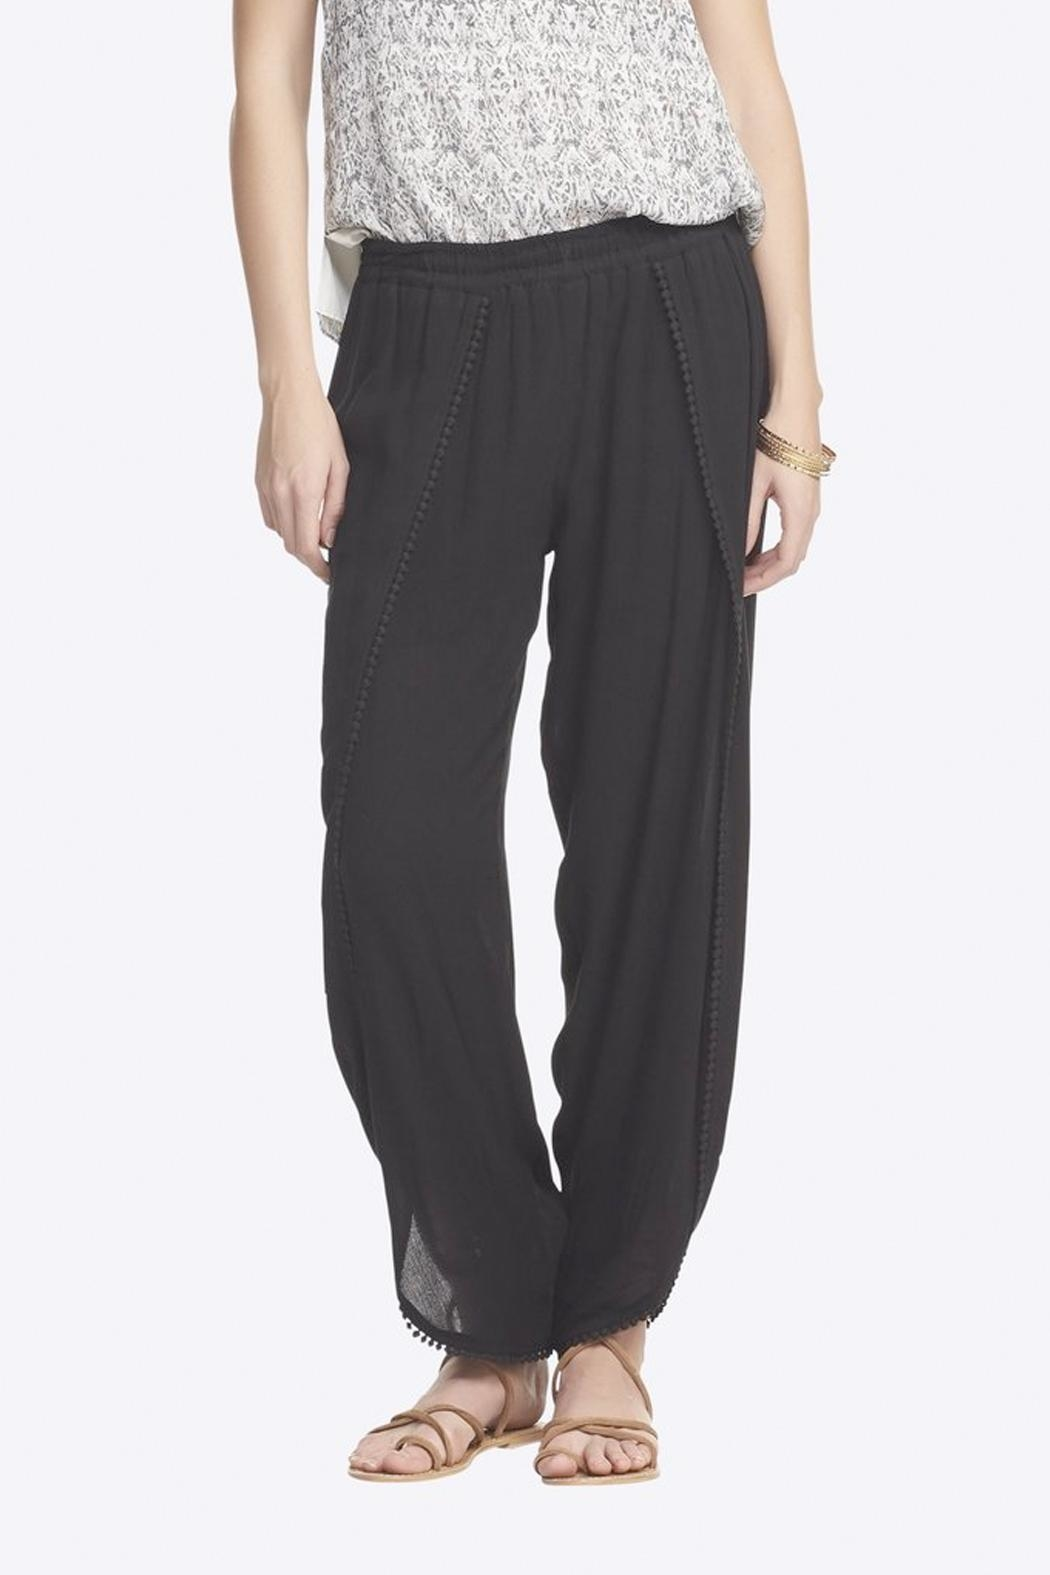 Tart Collections Marley Boho Pant - Front Cropped Image